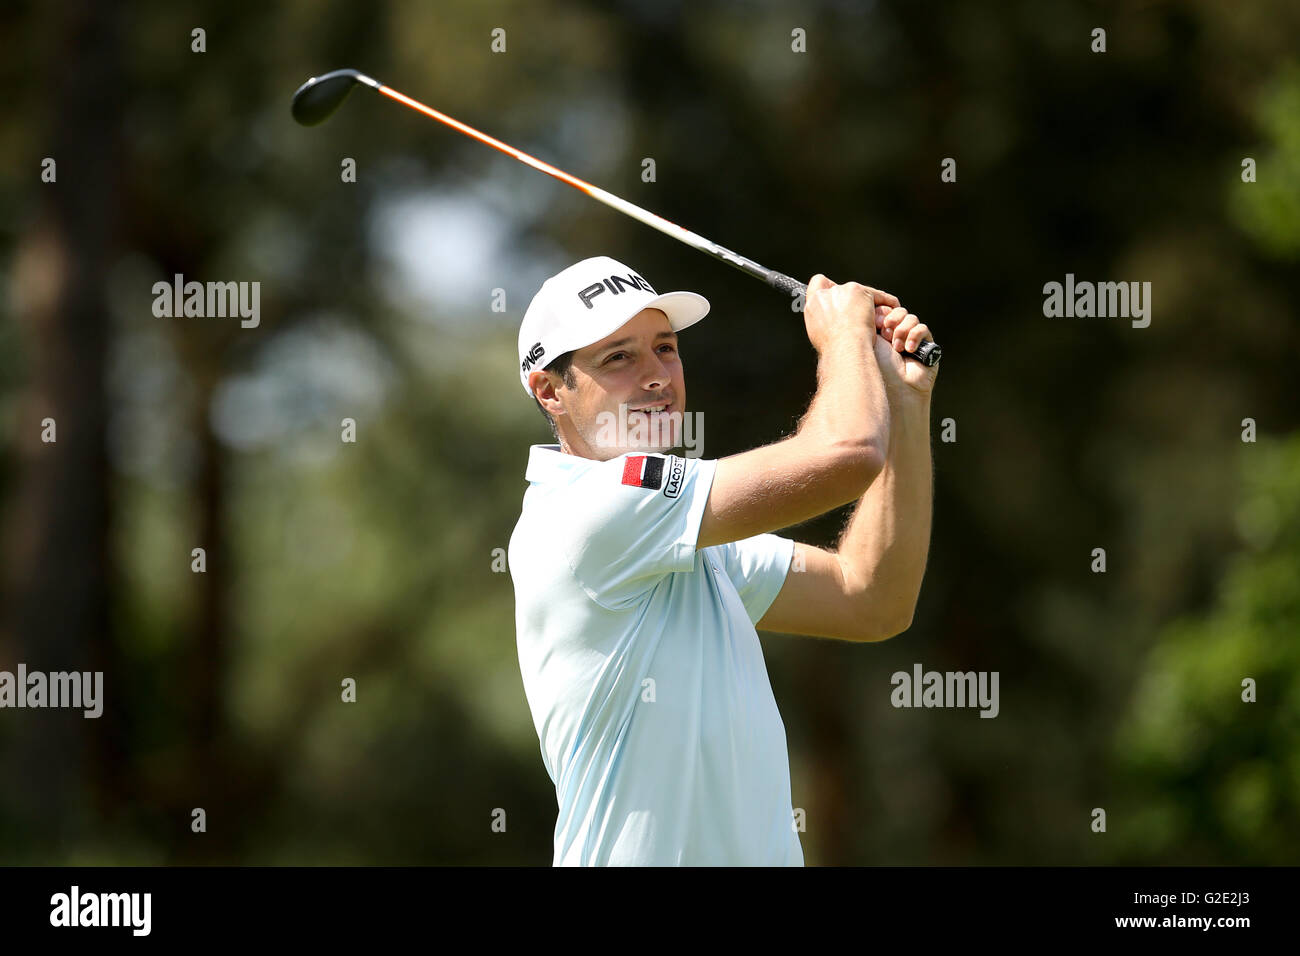 France's Julien Quesne tees off on the 8th hole during day four of the BMW PGA Championship at Wentworth Club, Windsor. Stock Photo